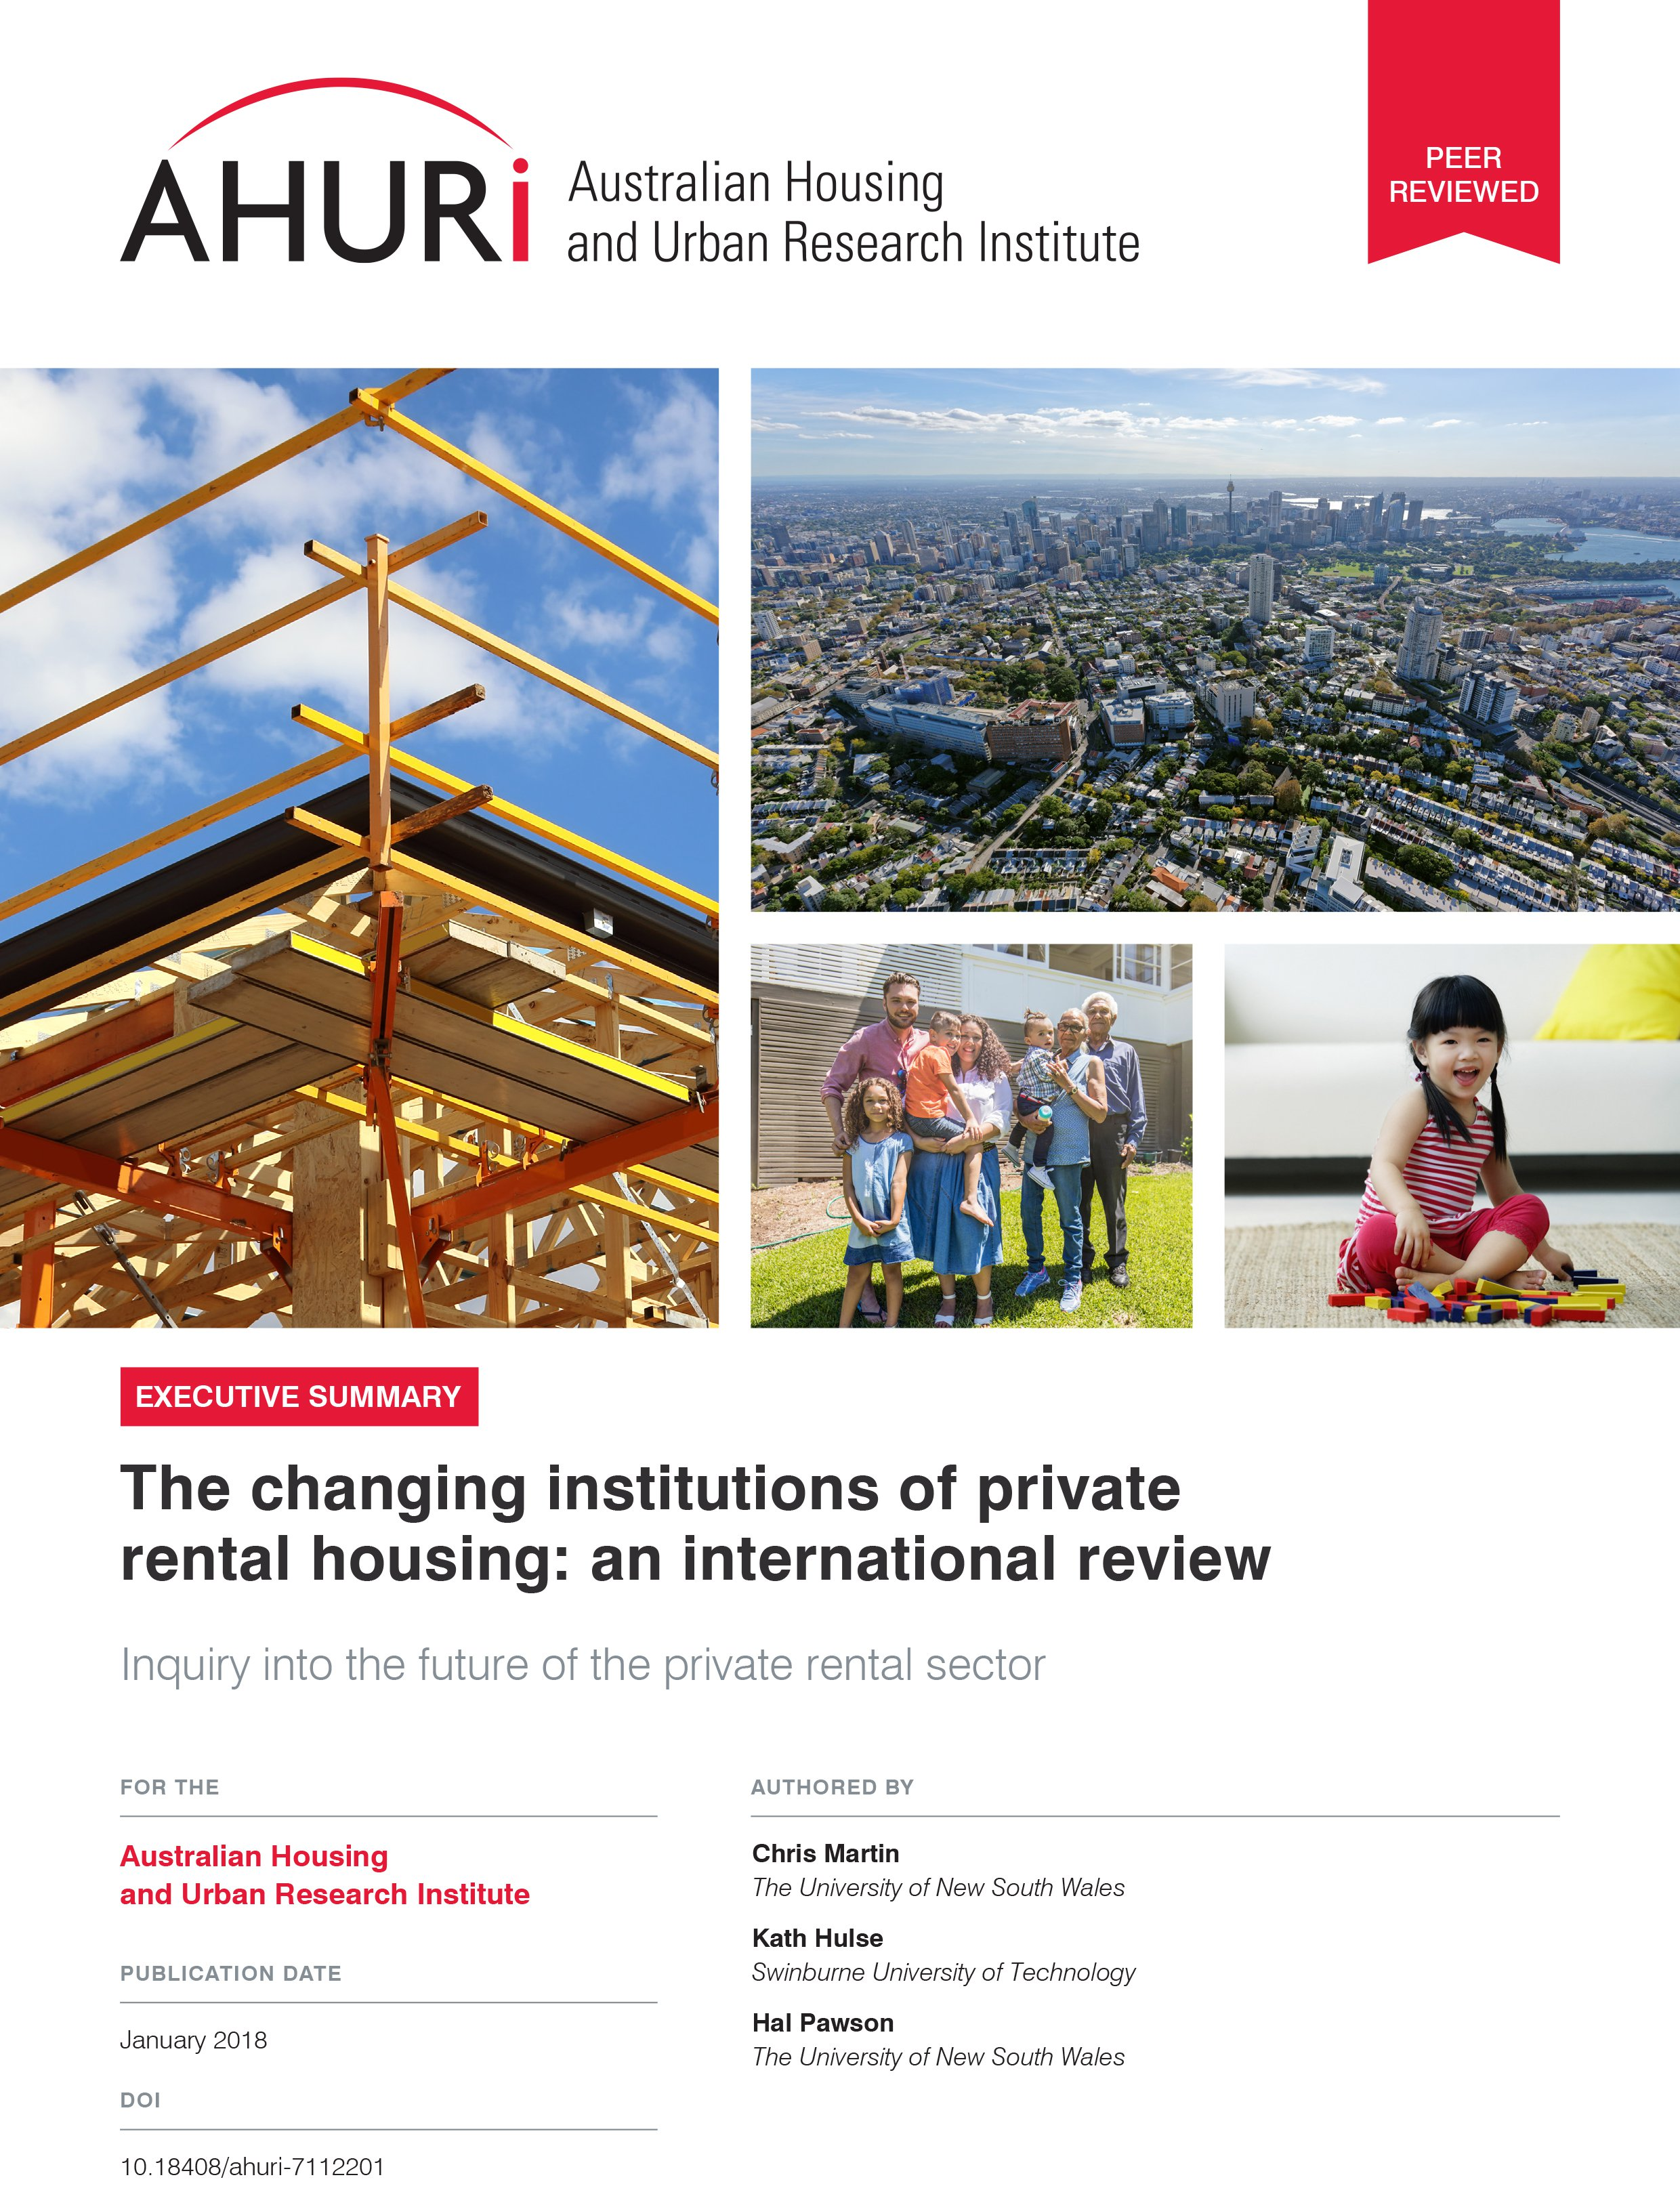 Executive Summary - The changing institutions of private rental housing: an international review